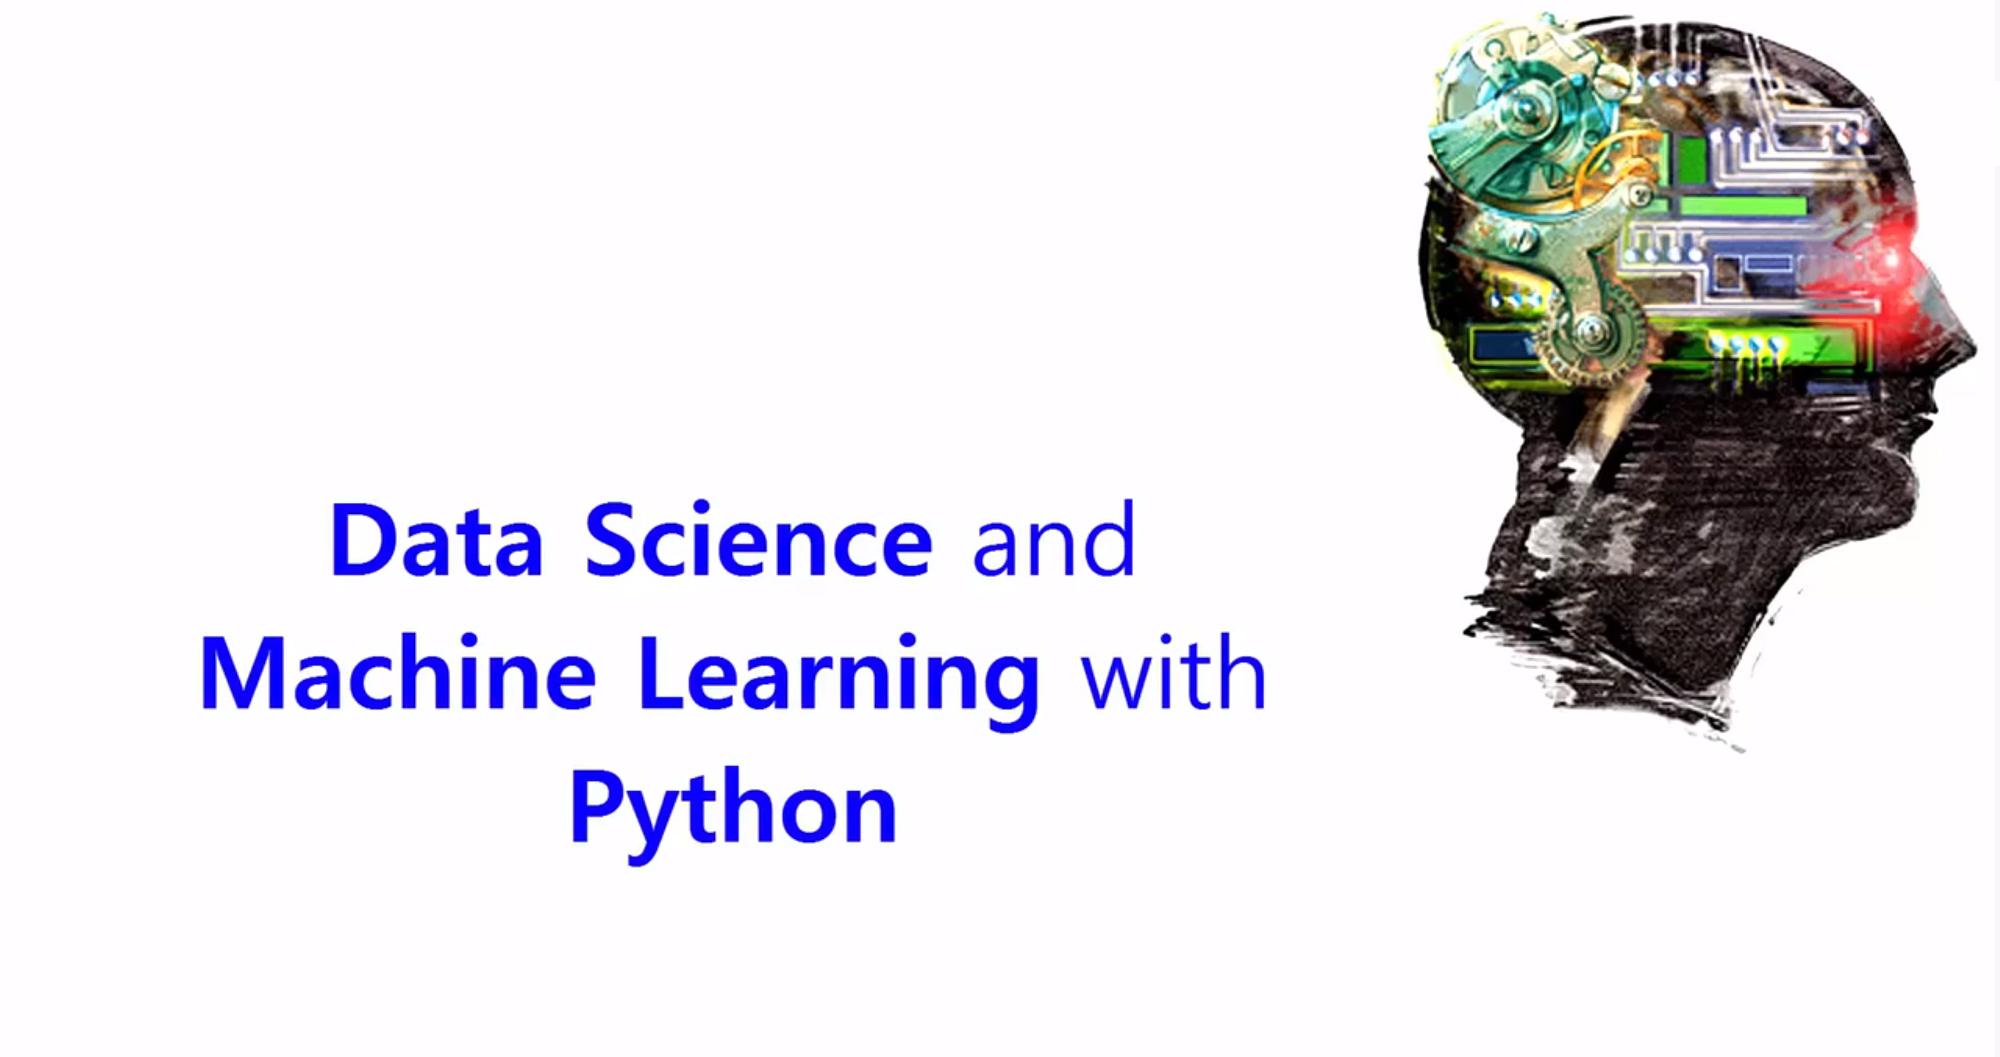 Data Science and Machine Learning with Python - Hands On!